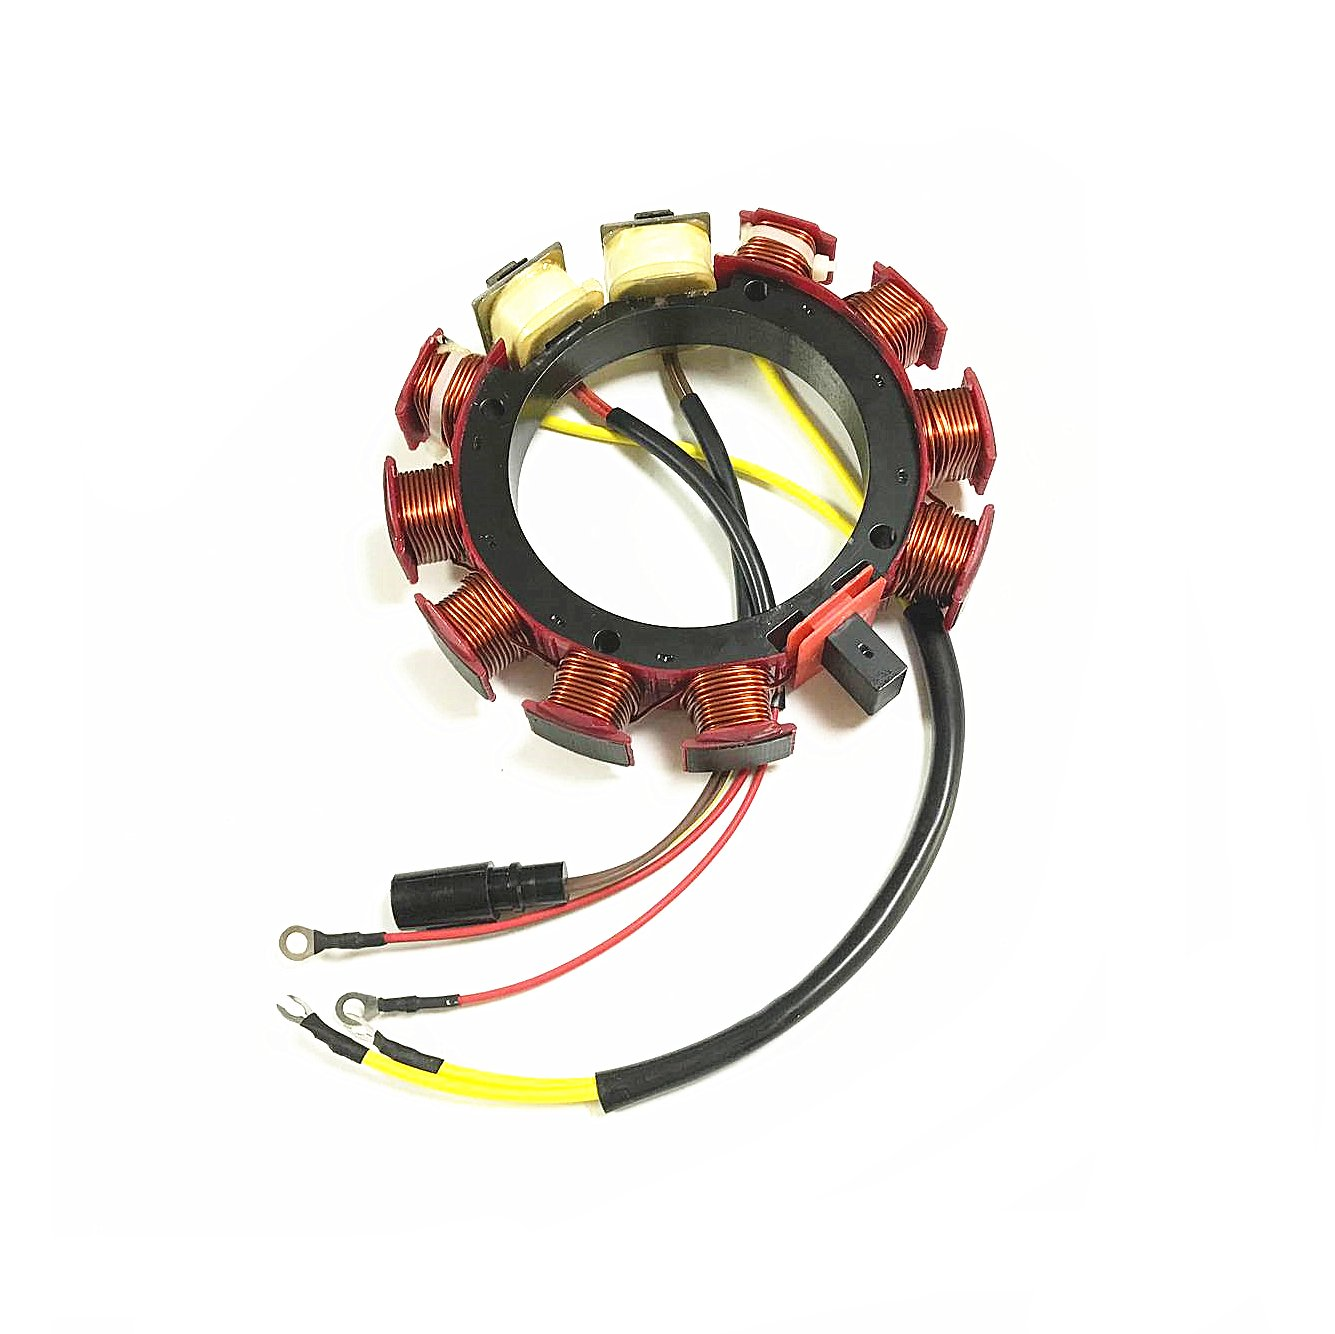 JETUNIT outboard Stator Assy For Johnson Evinrude 35 AMP 4 Cylinder 120 130 140hp Sea Drive 2.0L 1988 4 Cyl 173-4288 583561 584288